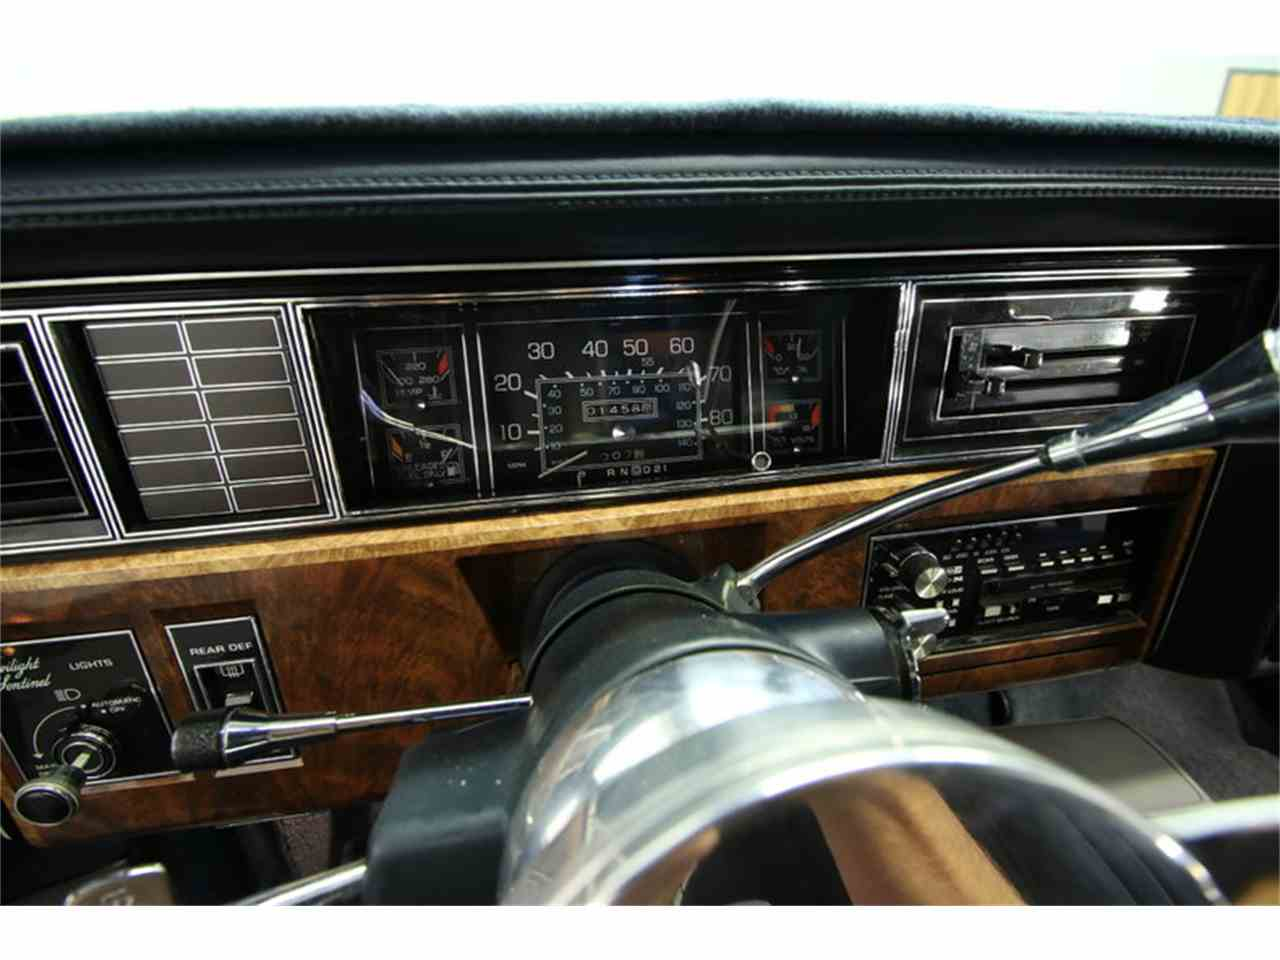 Large Picture of '85 Oldsmobile Toronado located in Lutz Florida - $9,995.00 Offered by Streetside Classics - Tampa - JPY6